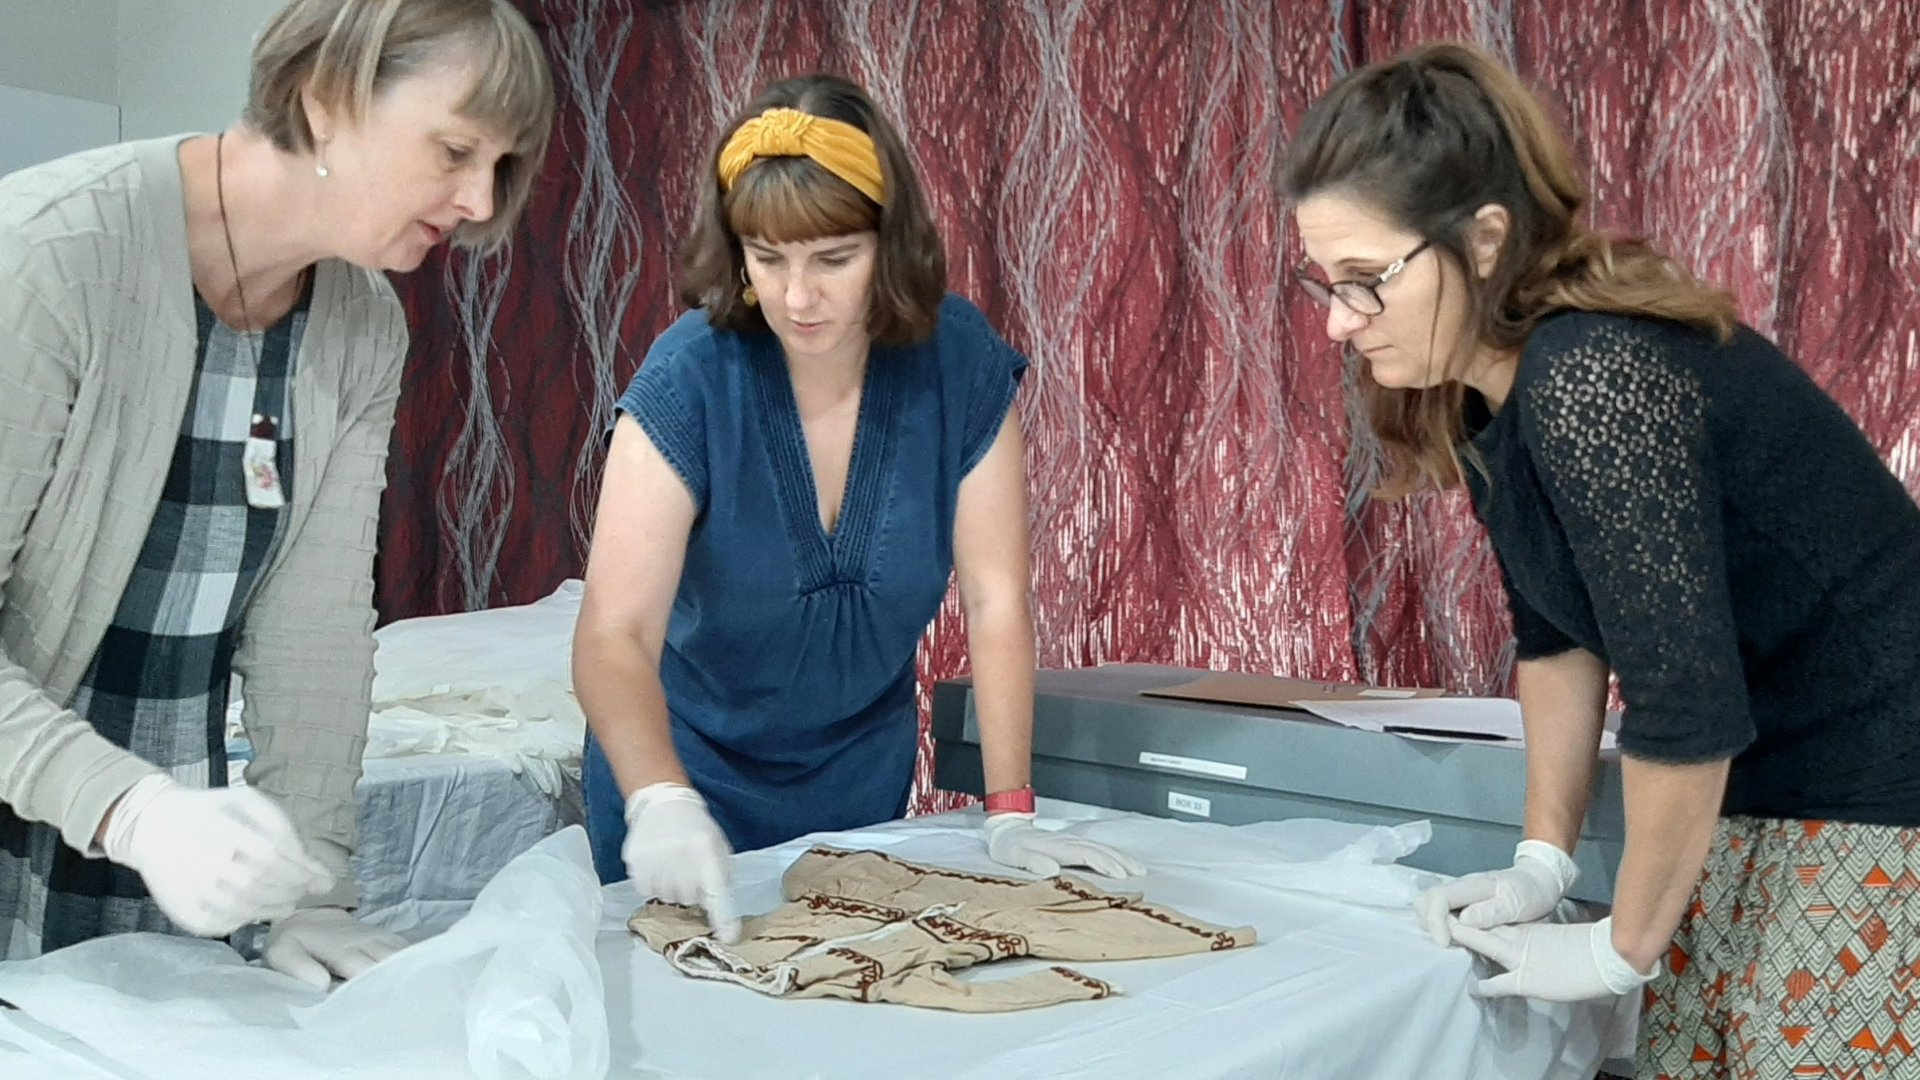 Dr Stella Lange, left, inspects a Victorian-era child's dress with Jessie Bray Sharpin and Mahina Marshall before it is repacked and stored.